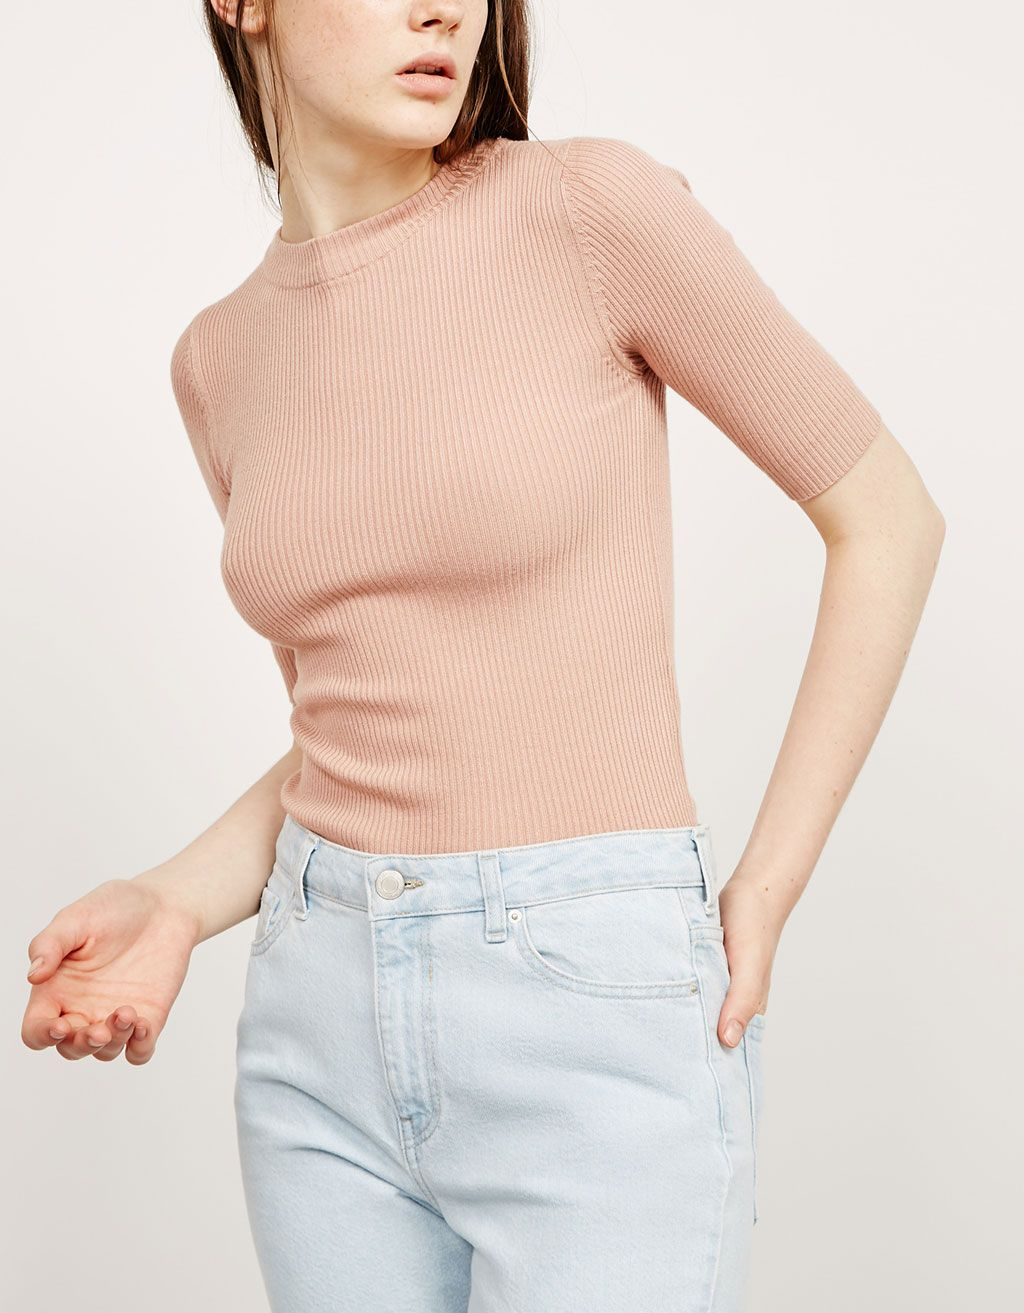 e5dab605acb0e8 Round neck ribbed jumper - Tops - Bershka Greece